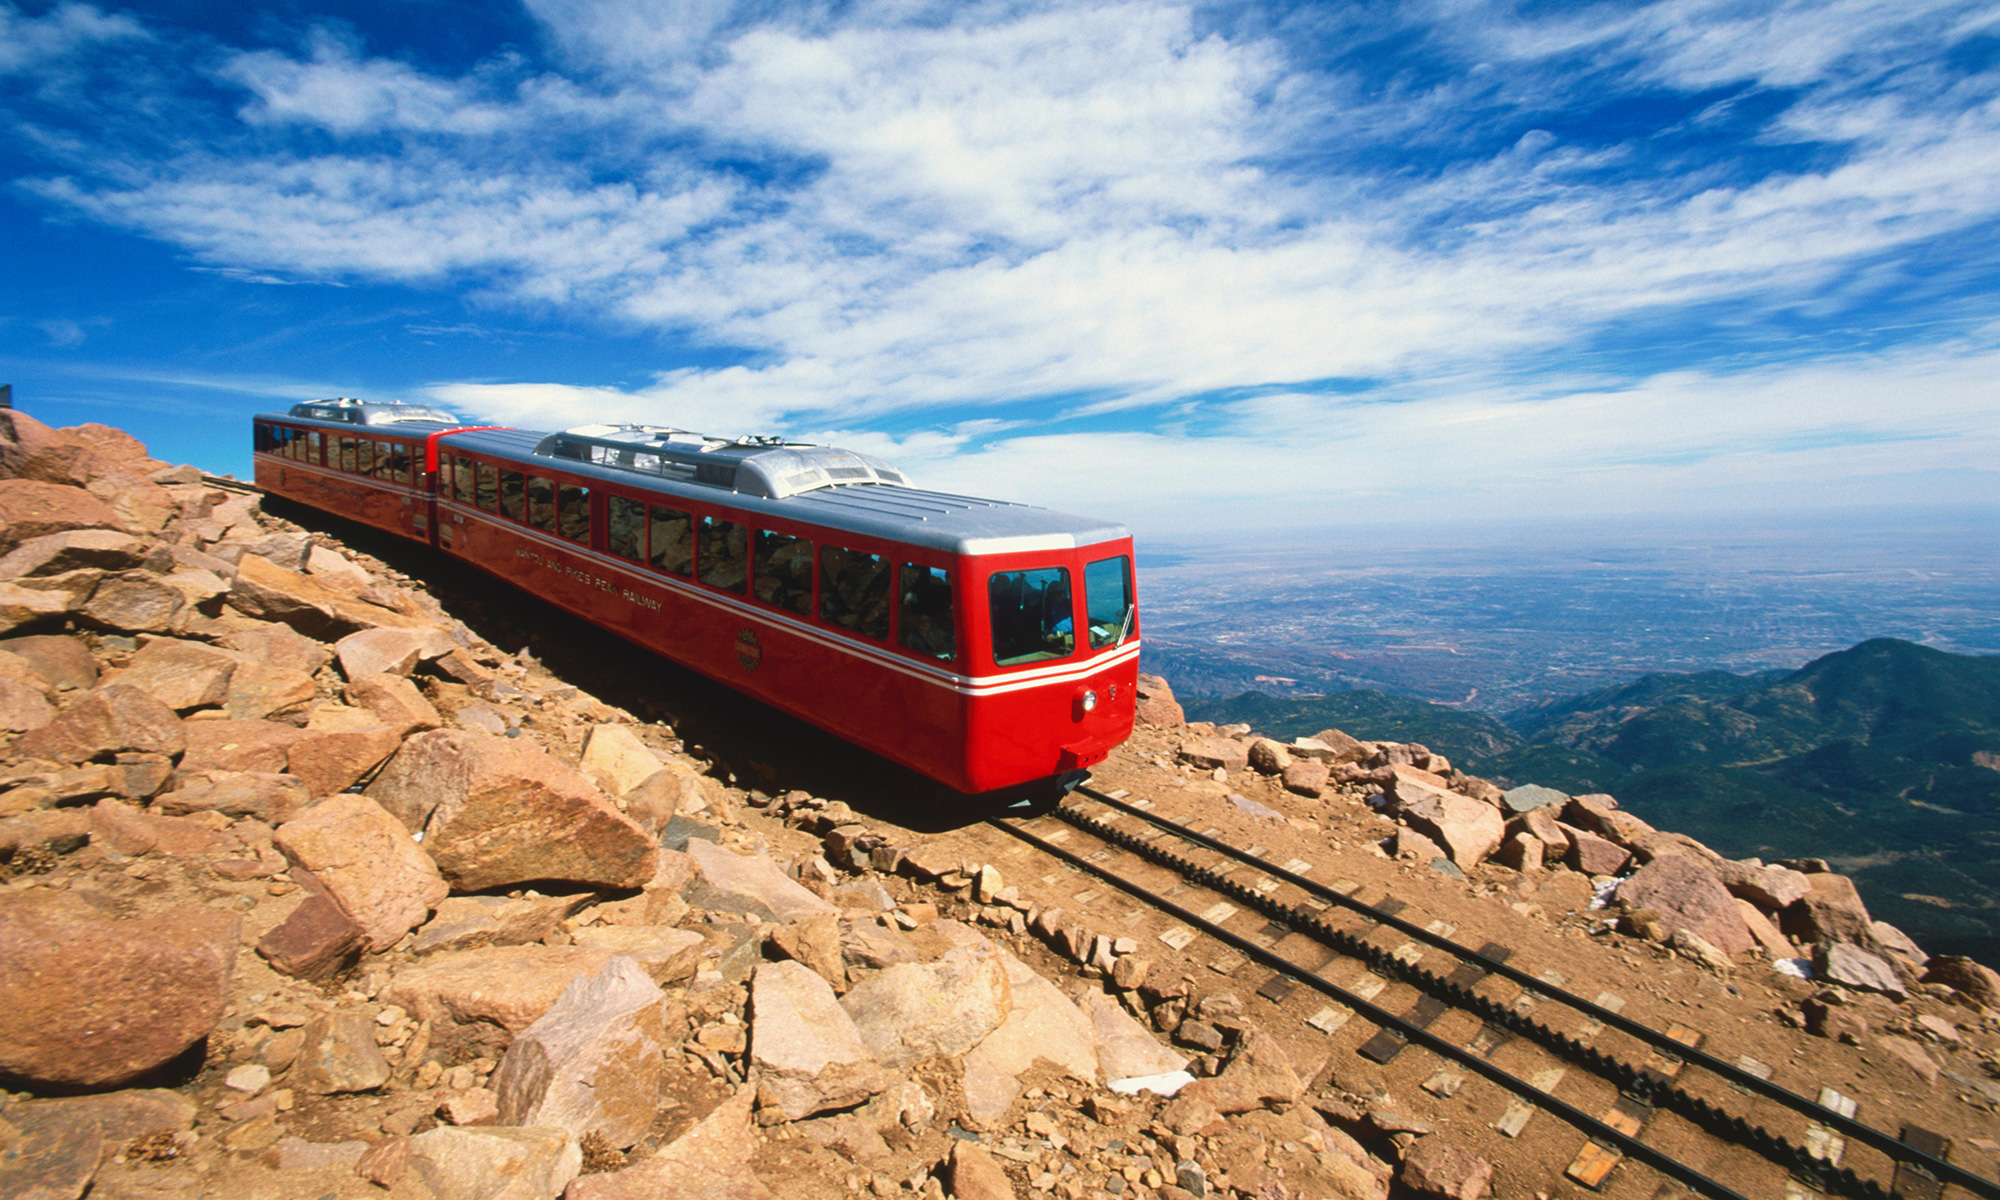 Photo courtesy The Broadmoor Manitou and Pikes Peak Cog Railway shows the train in action before it closed for renovations in 2017.